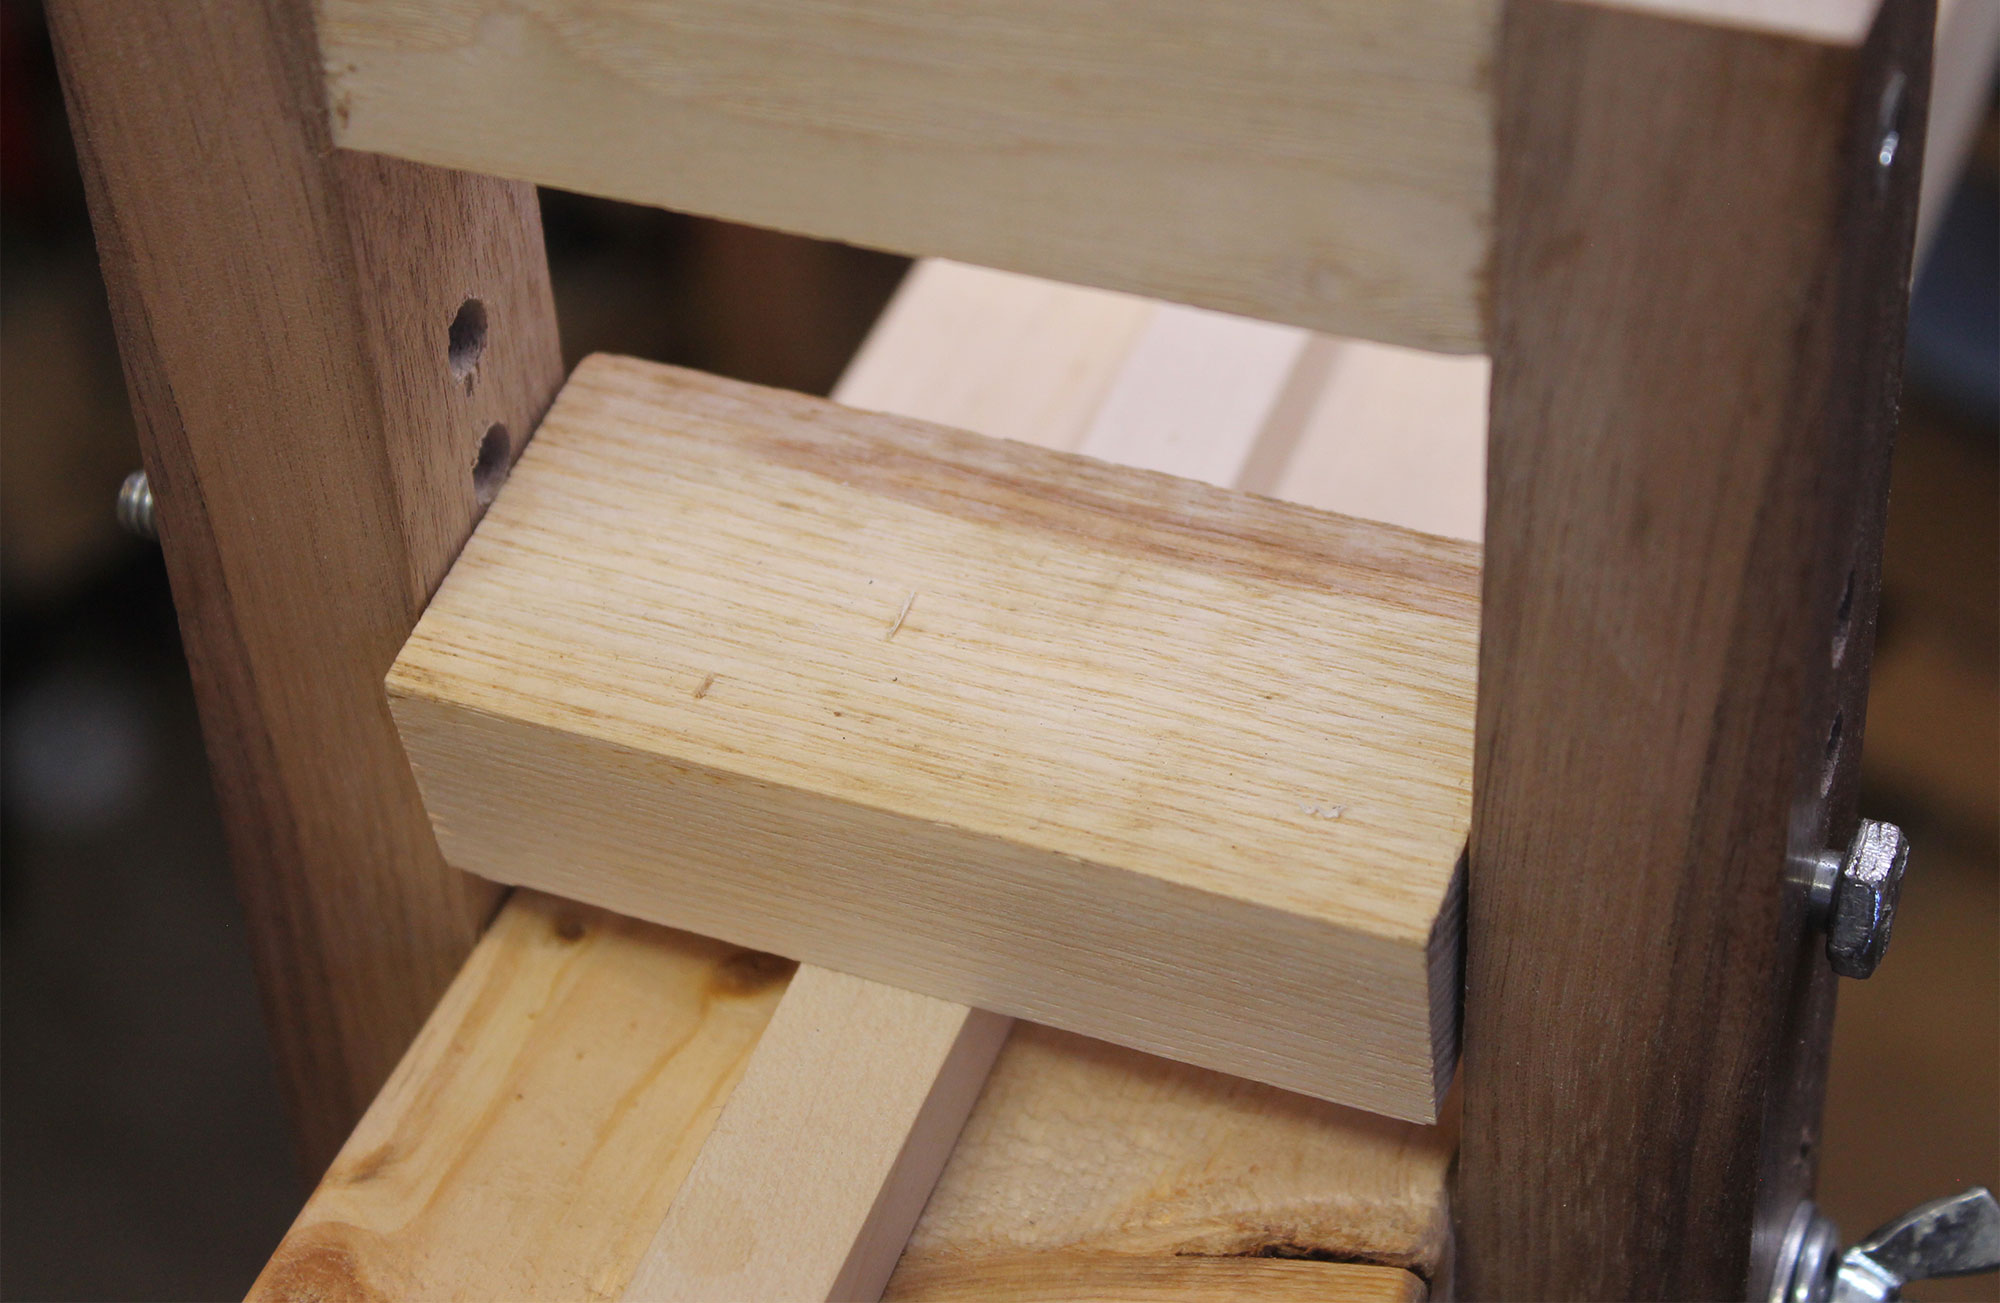 Installing the beam and clamping block to the fixture.